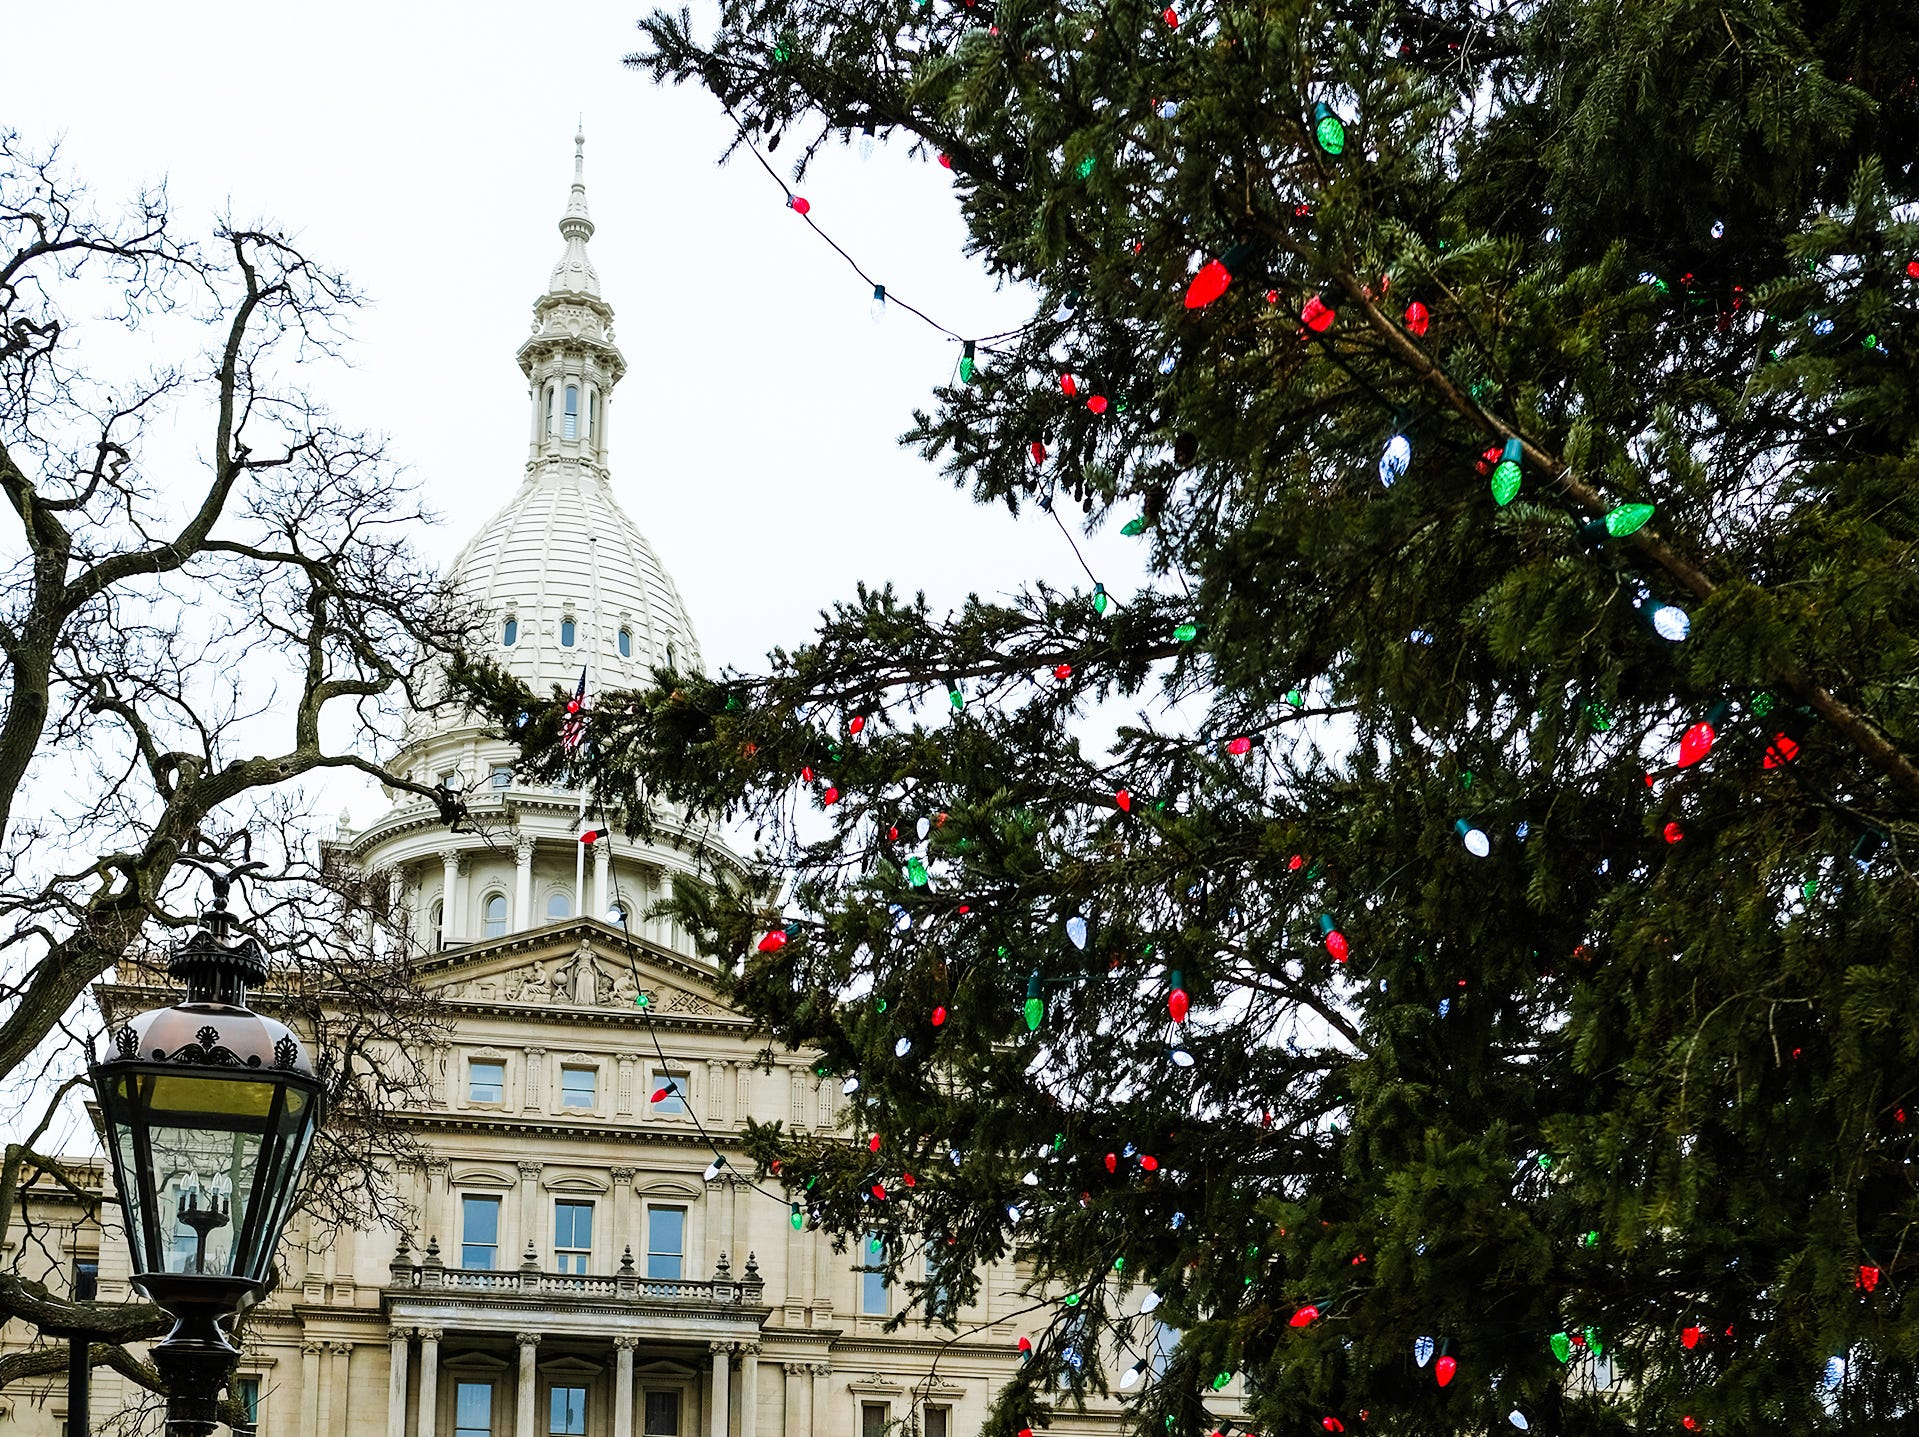 Work is well underway Saturday, Dec. 29, 2018 at the state Capitol to prepare for the inauguration of Michigan's Governor on January 1st.